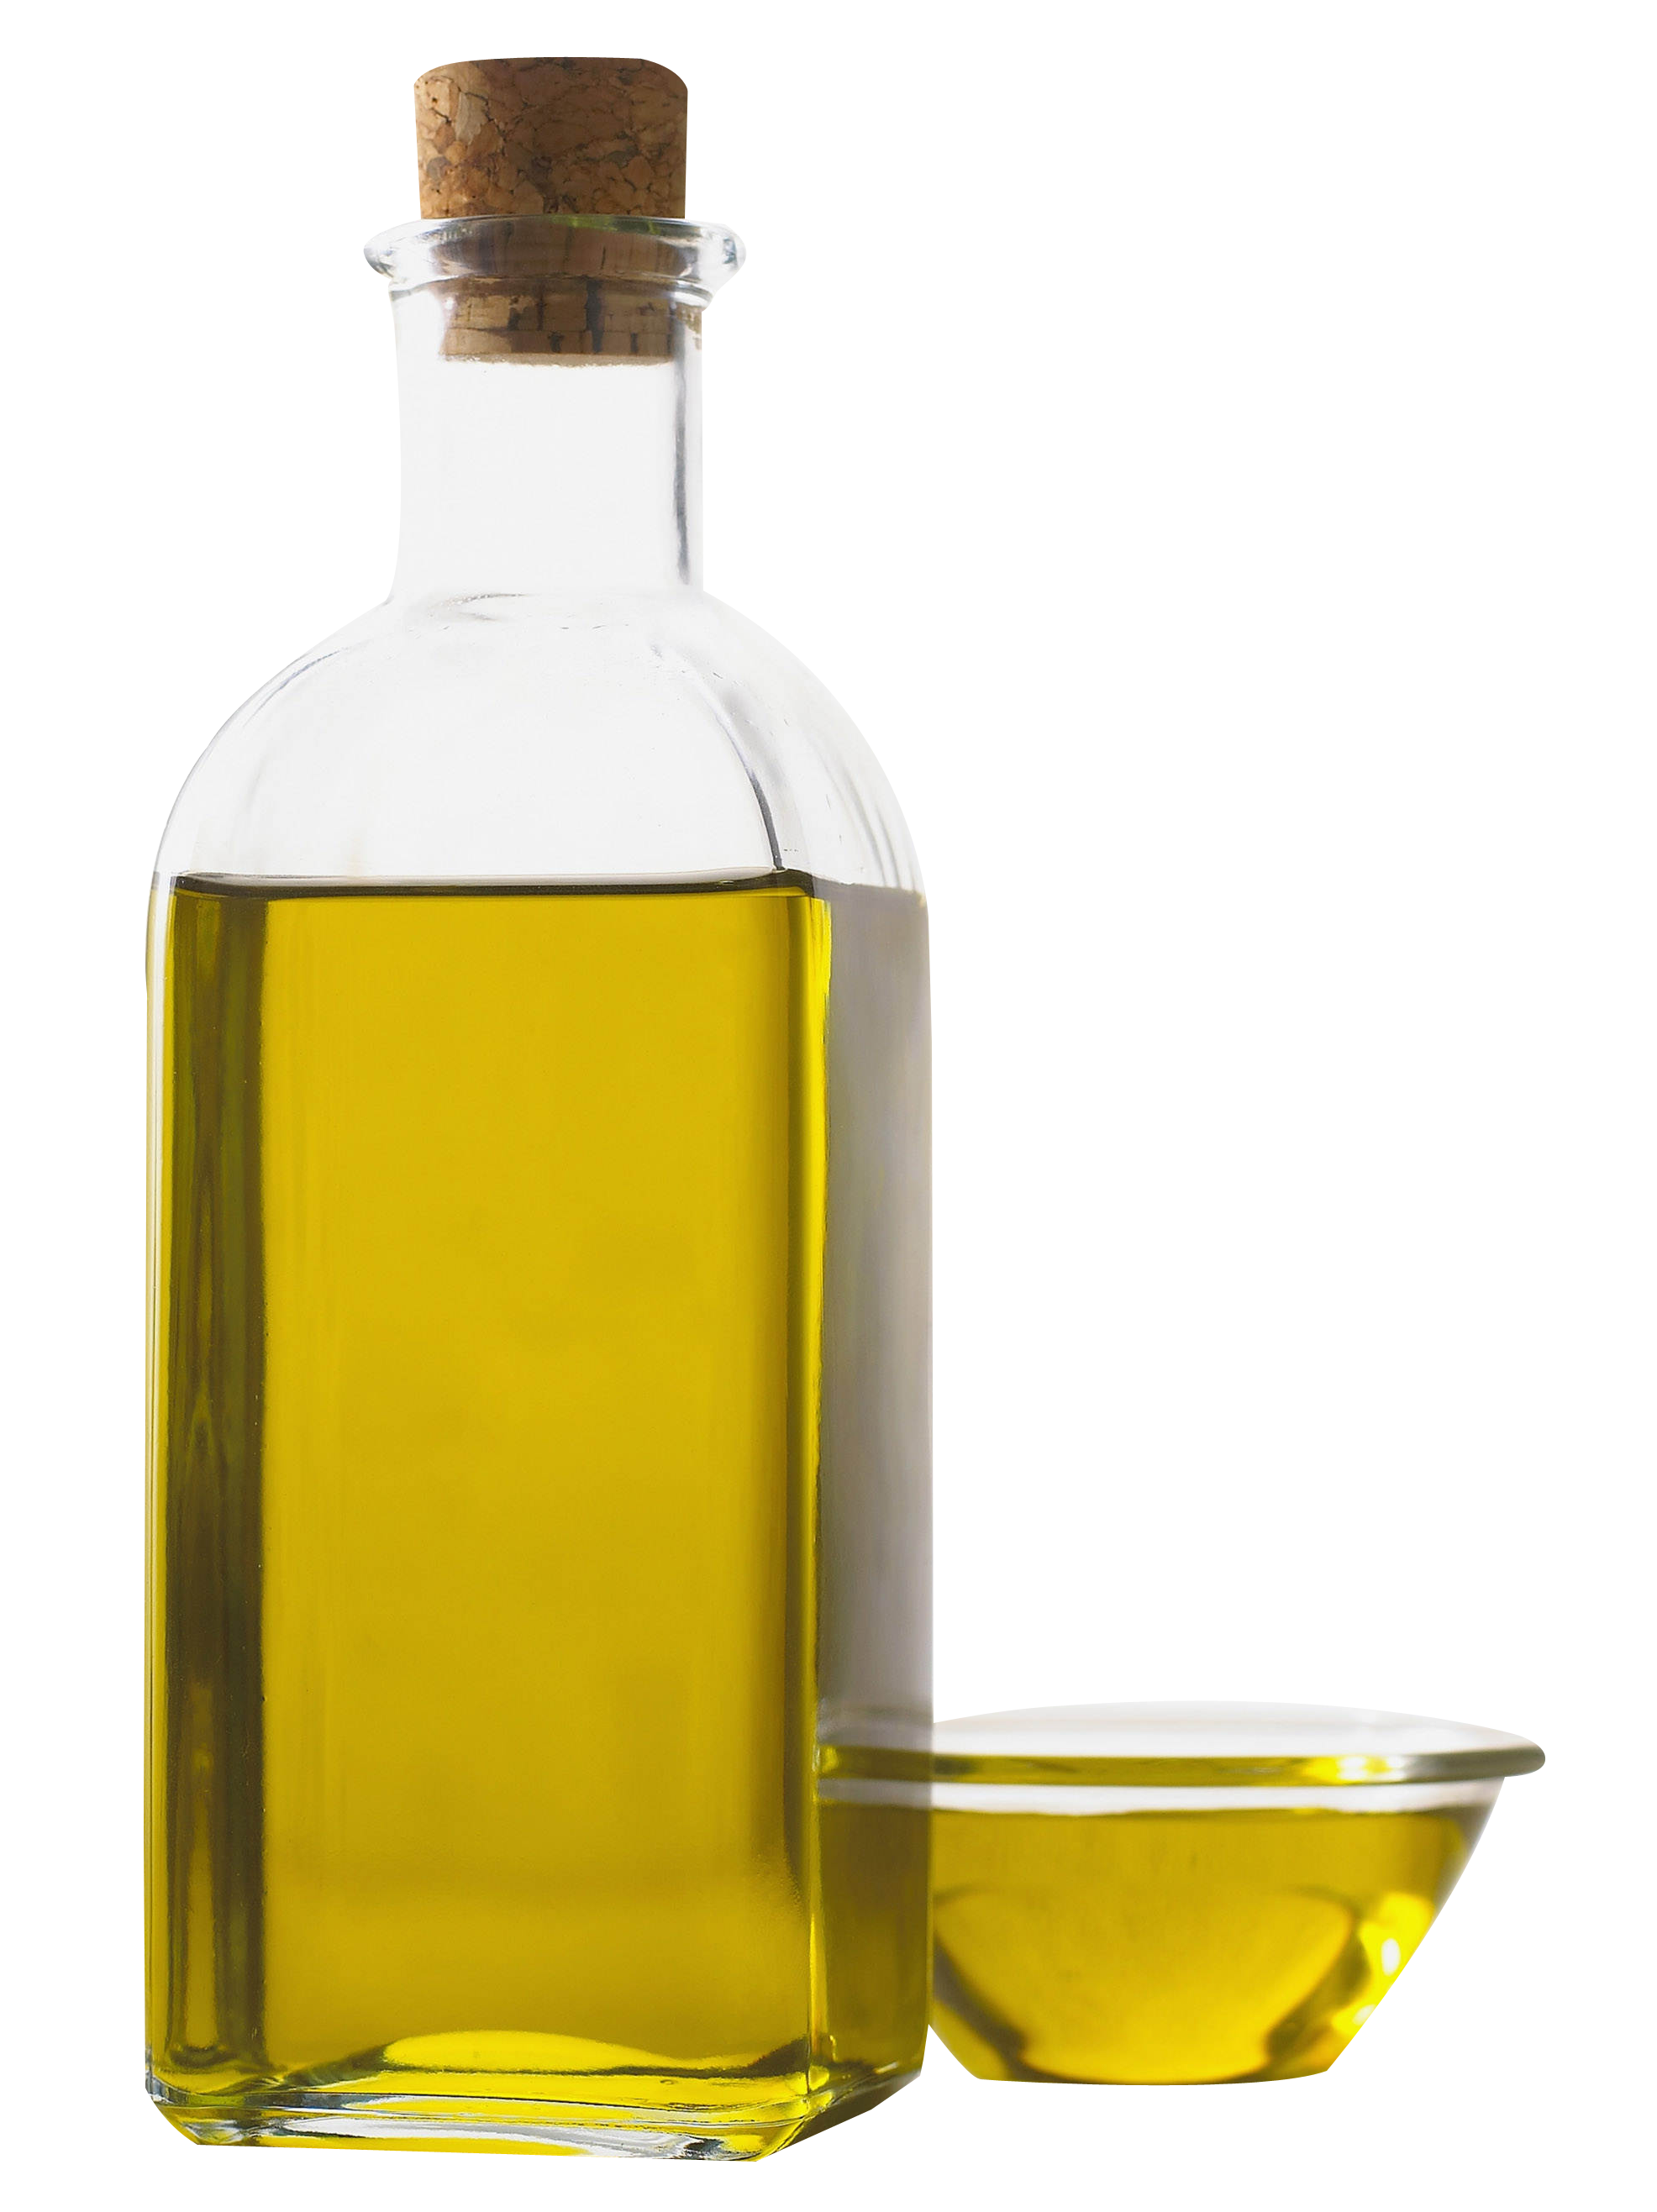 Jar free on dumielauxepices. Oil clipart olive oil